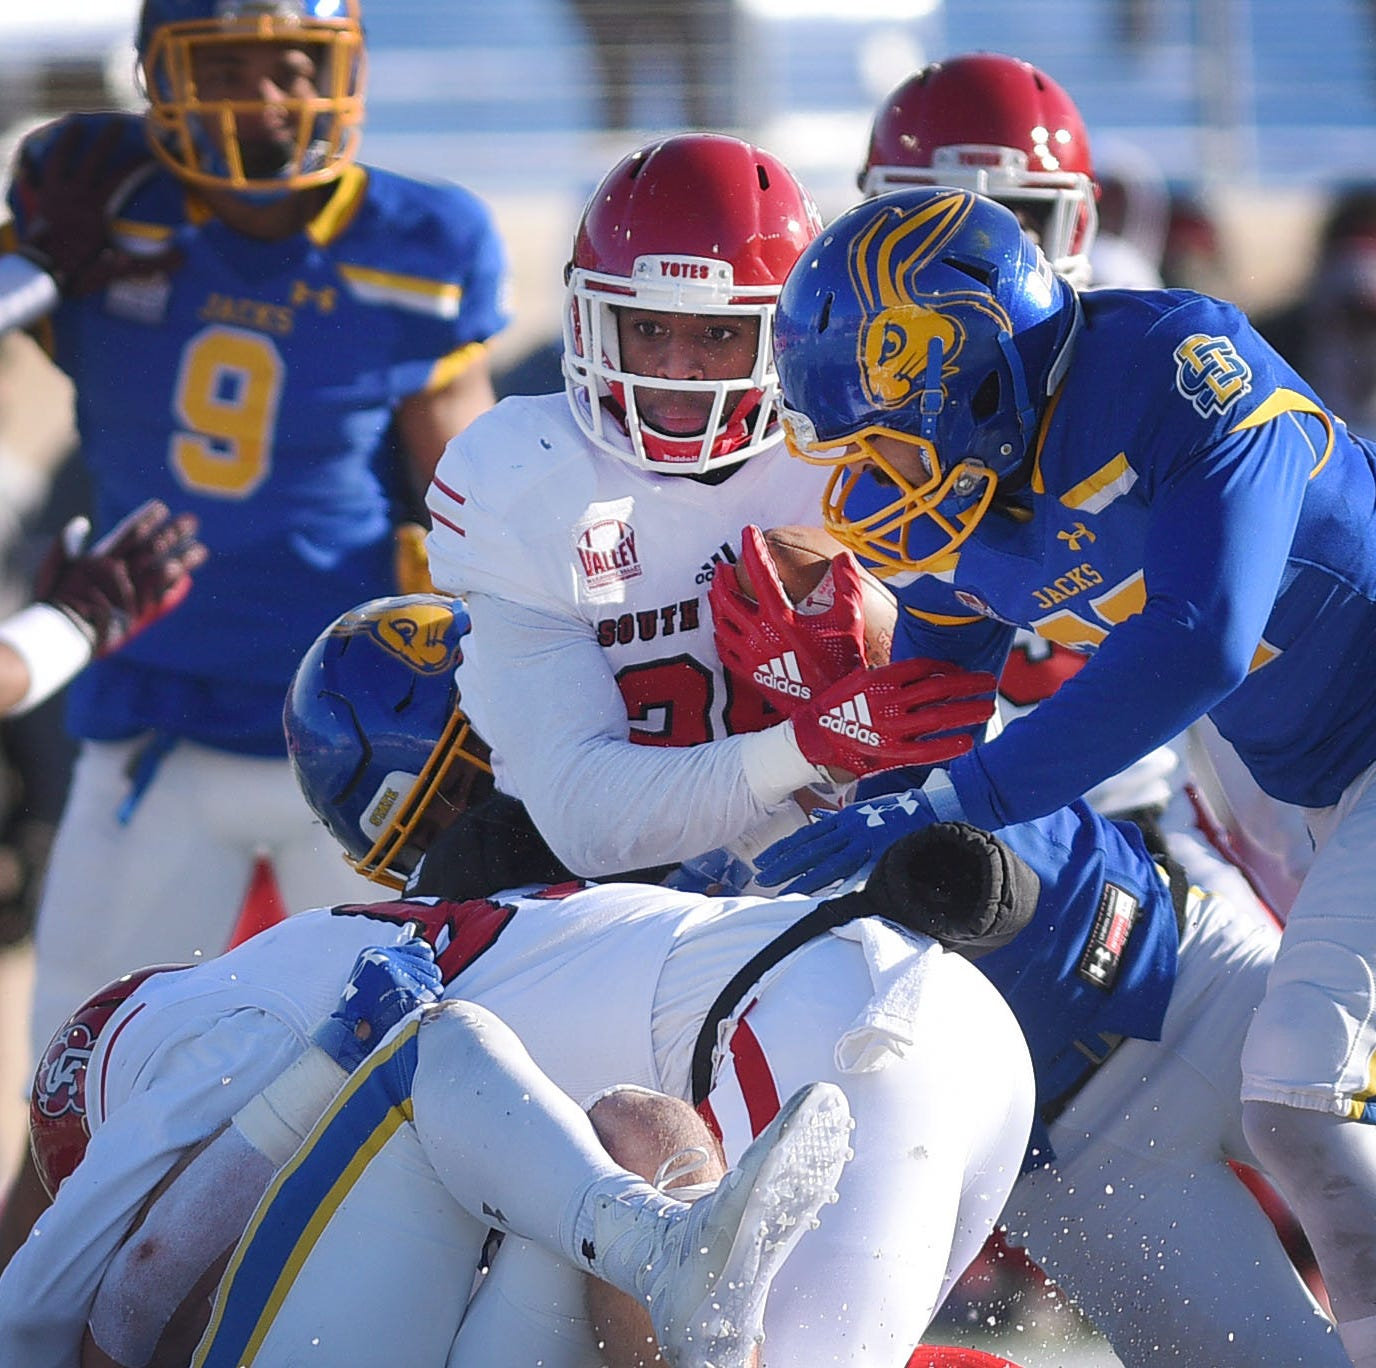 South Dakota State vs. South Dakota: A very cold day for the Coyotes